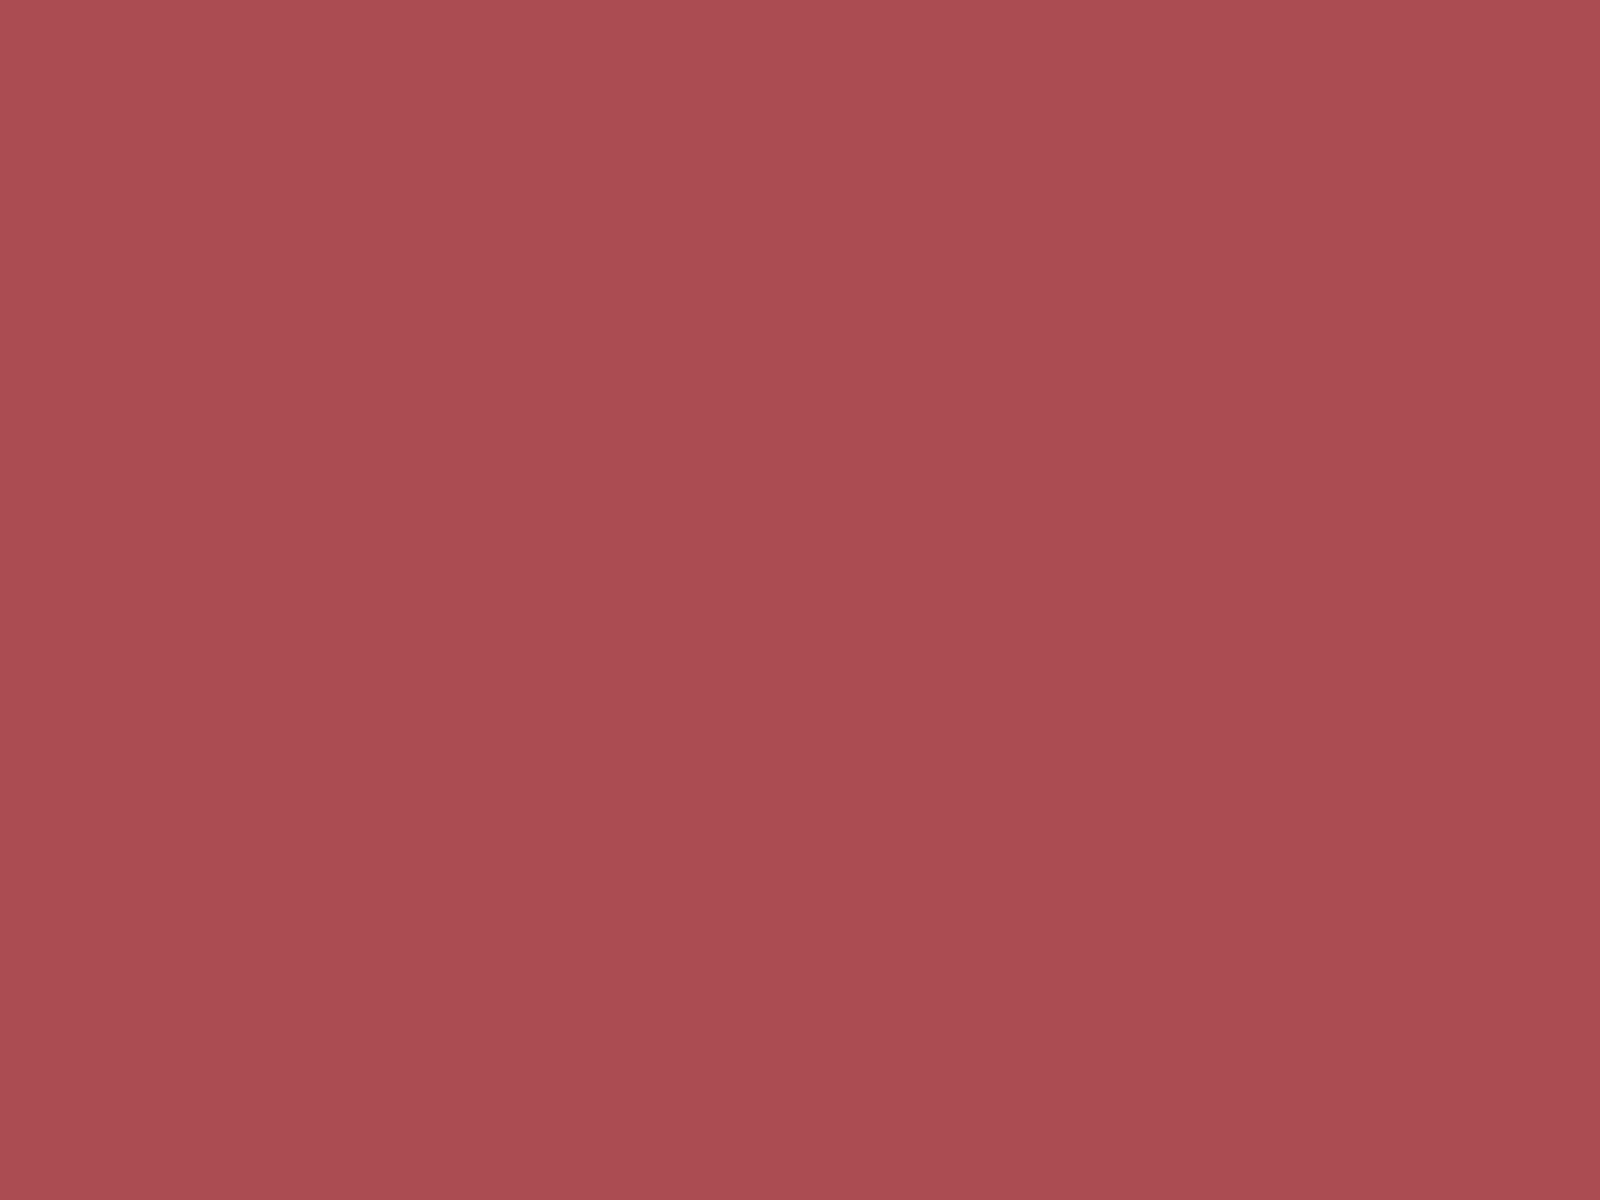 1600x1200 English Red Solid Color Background